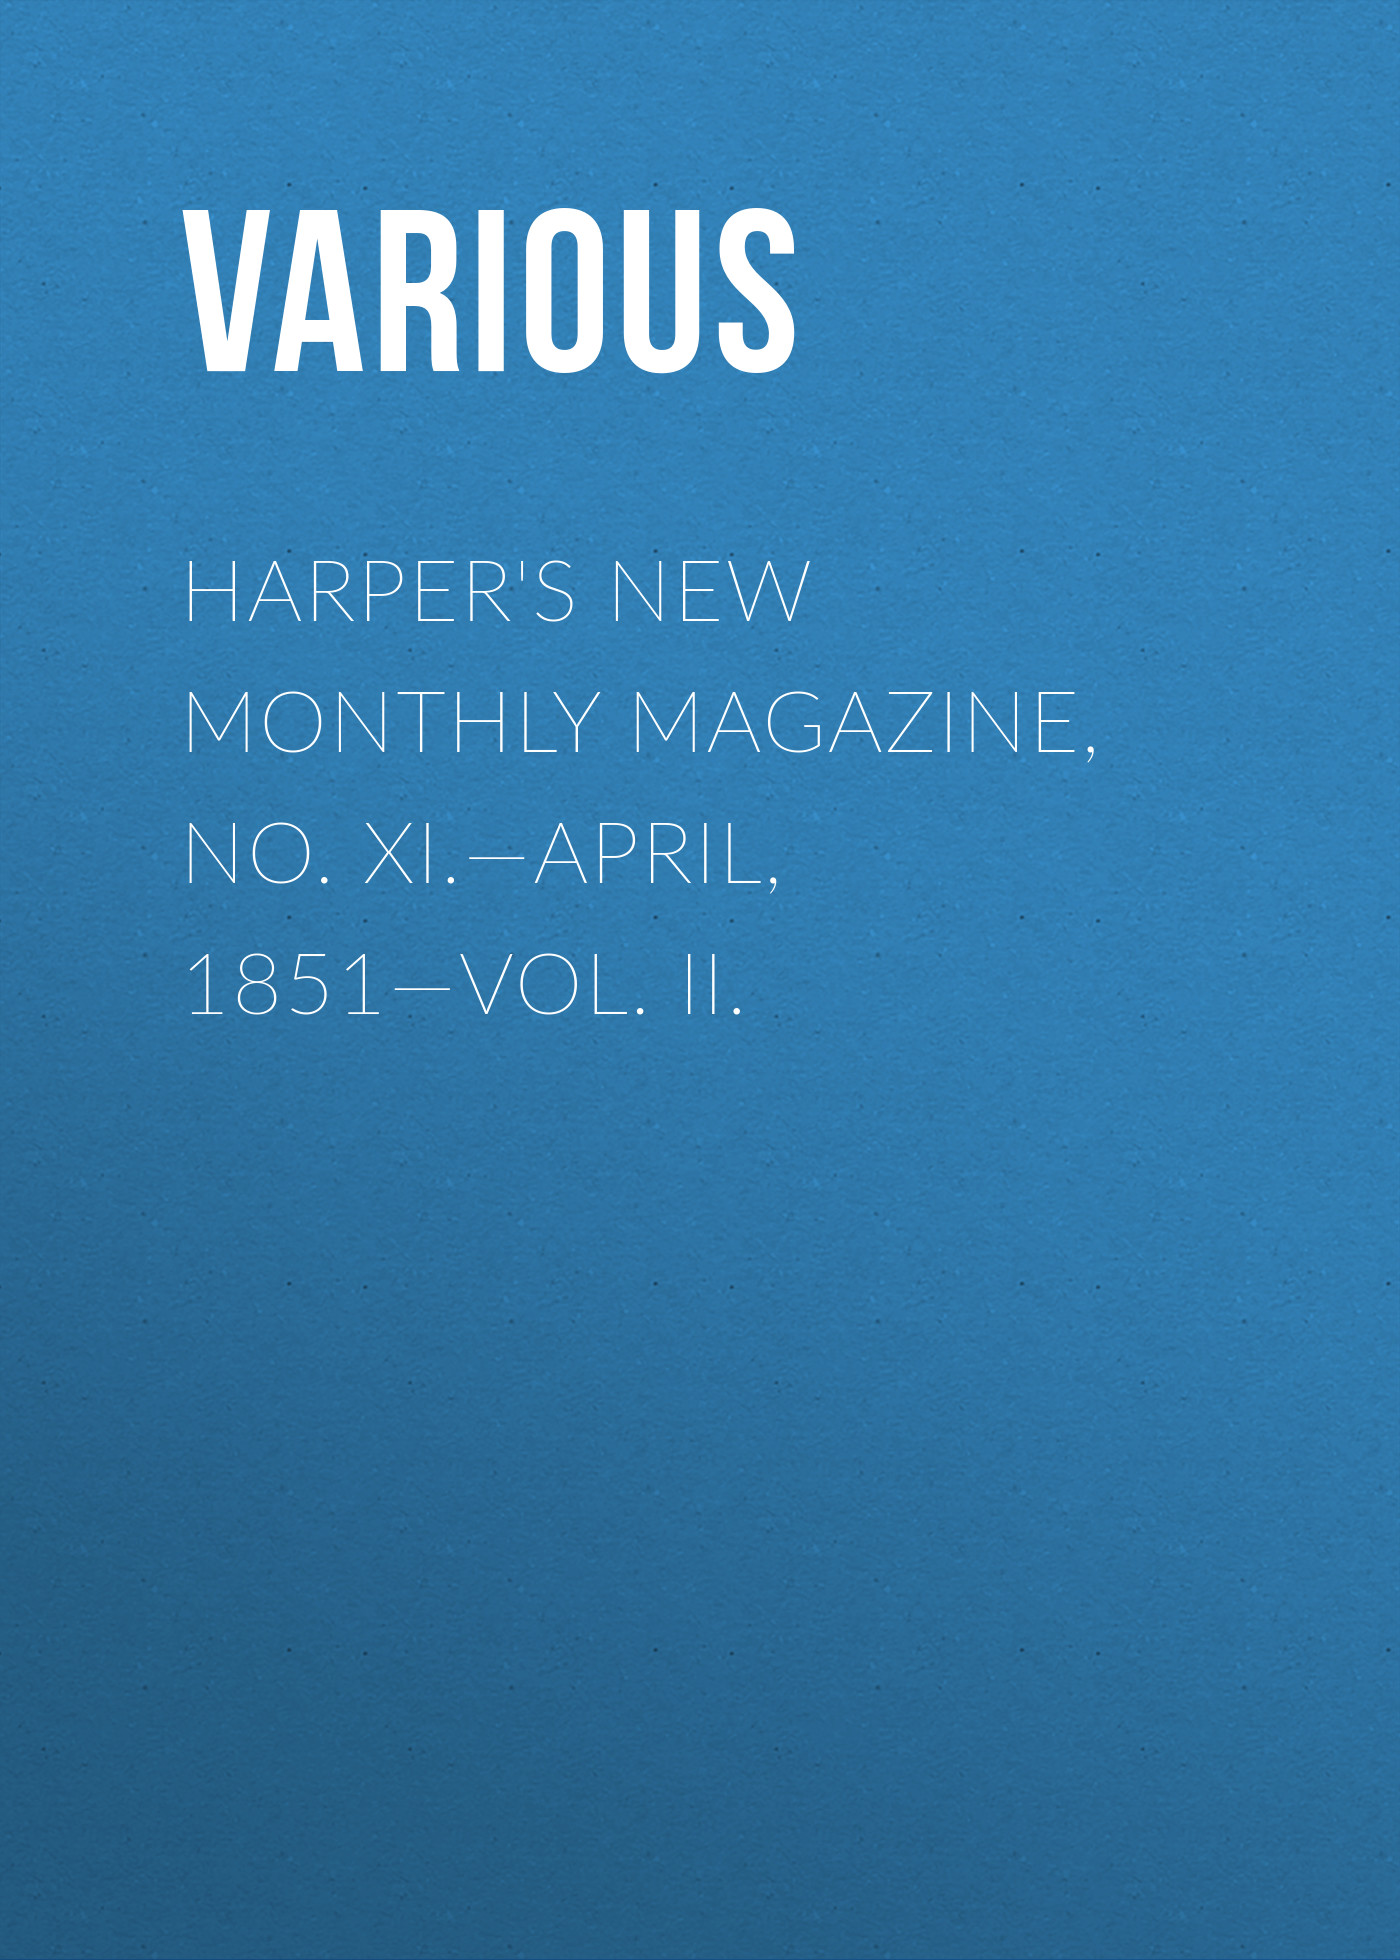 Фото - Various Harper's New Monthly Magazine, No. XI.—April, 1851—Vol. II. various harper s new monthly magazine no xxiii april 1852 vol iv